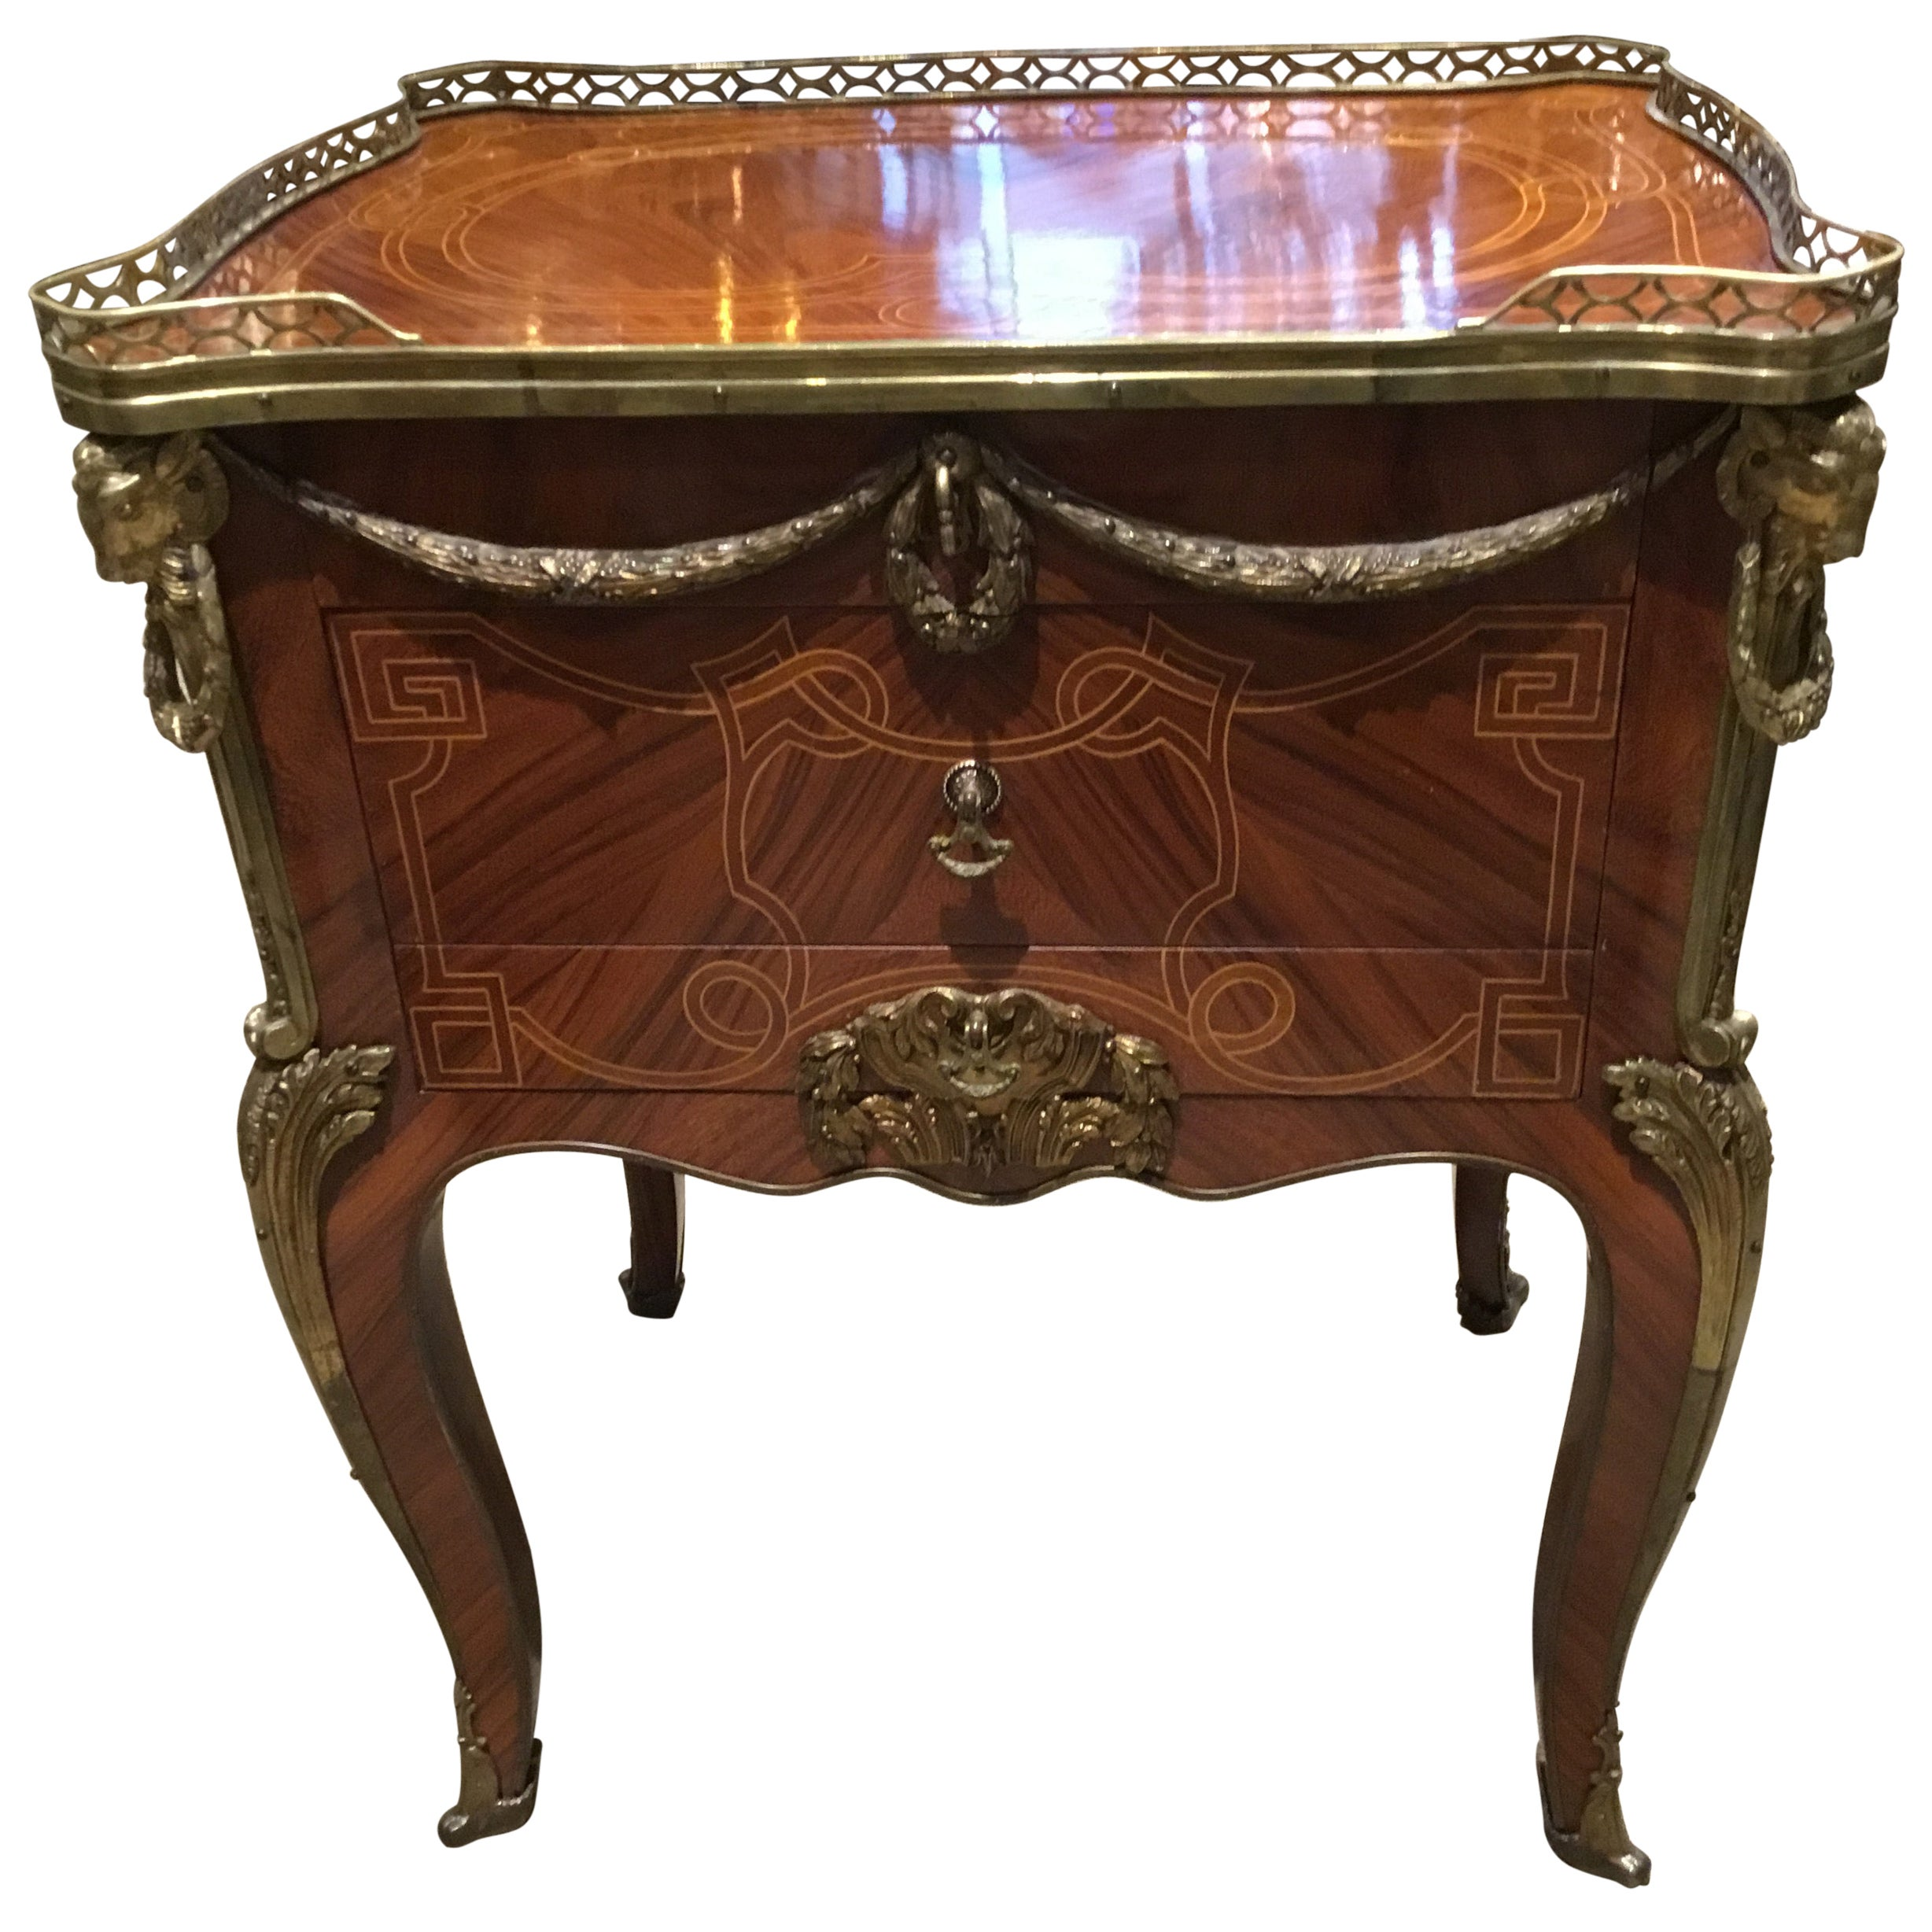 Louis XV Style Commode/ Secretary with Leather Writing Surface, 3 Drawers